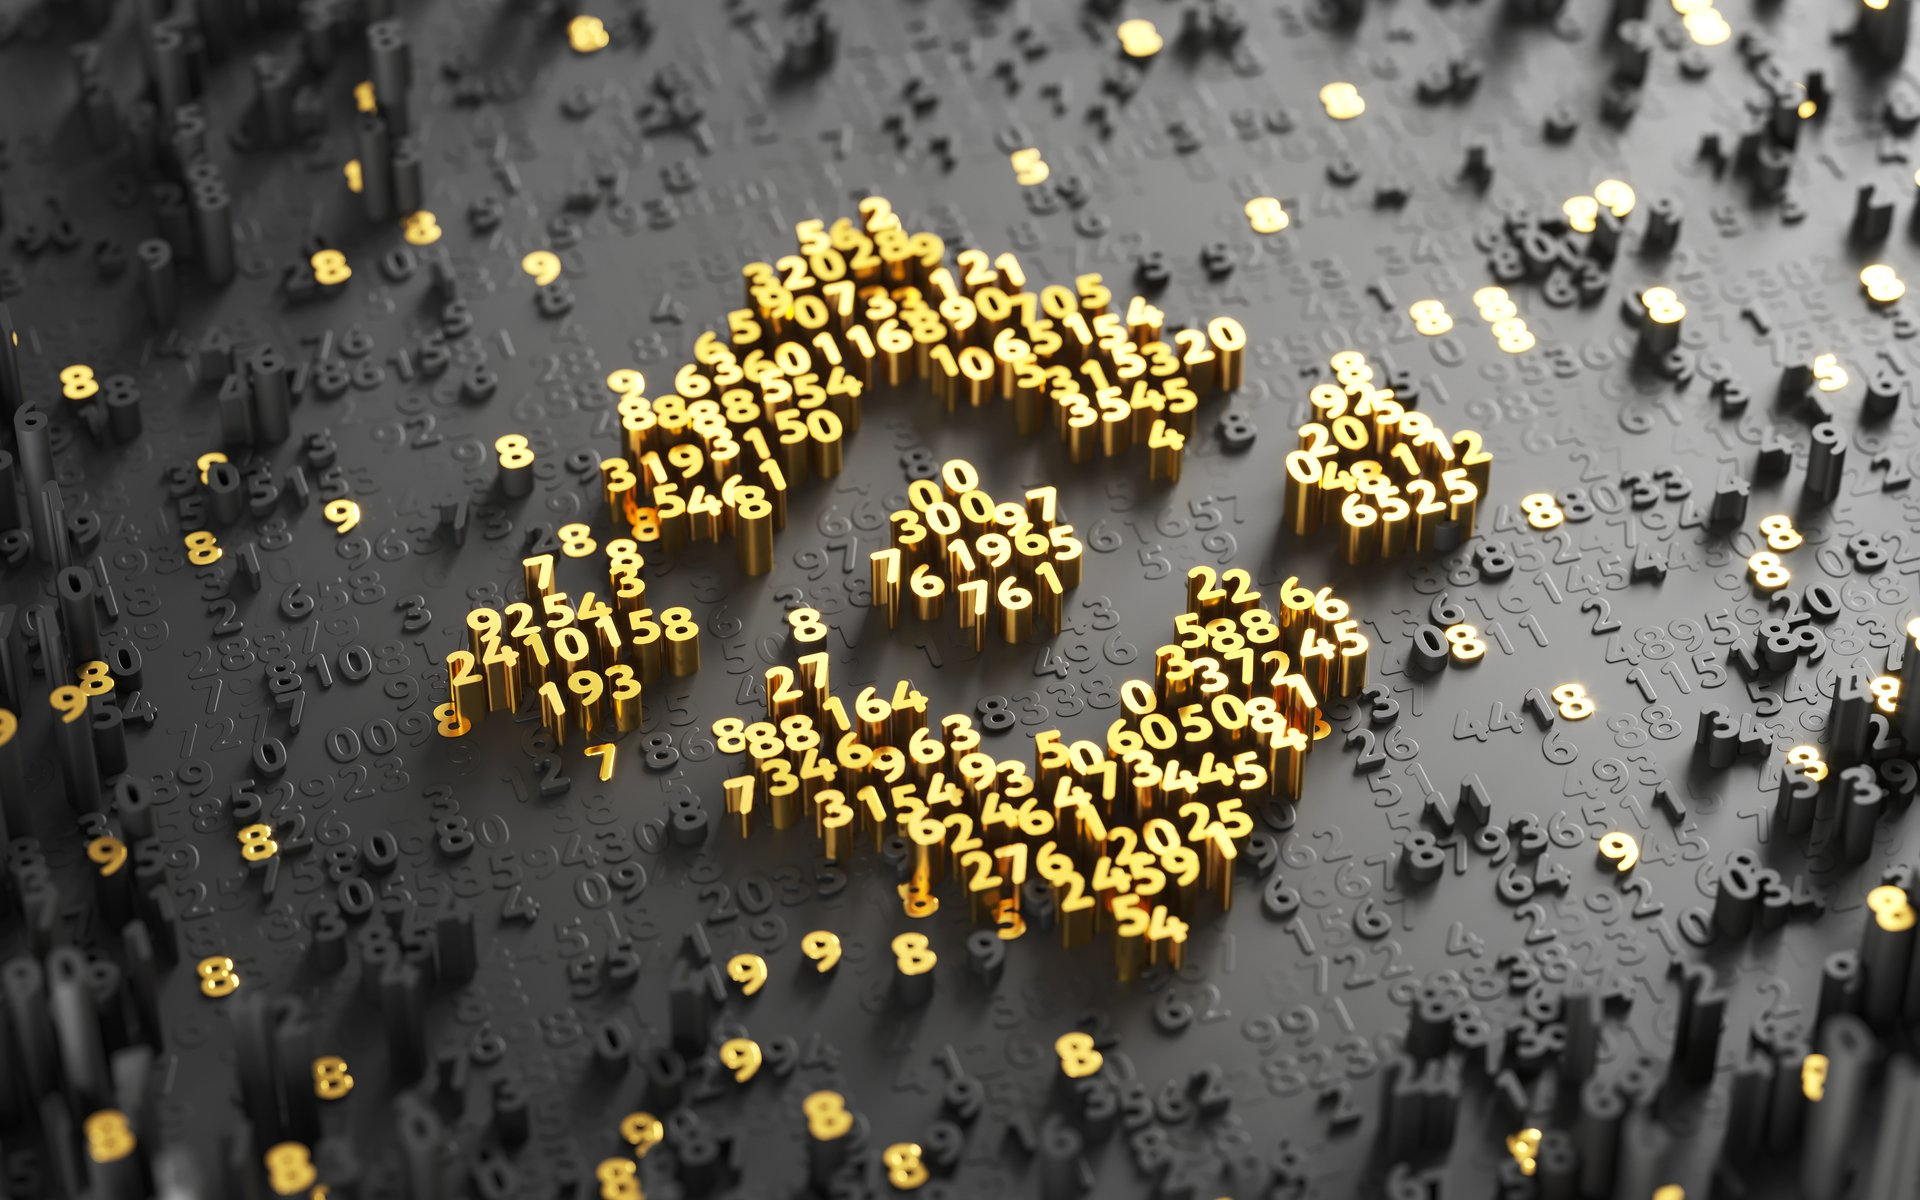 Binance developing its own public blockchain